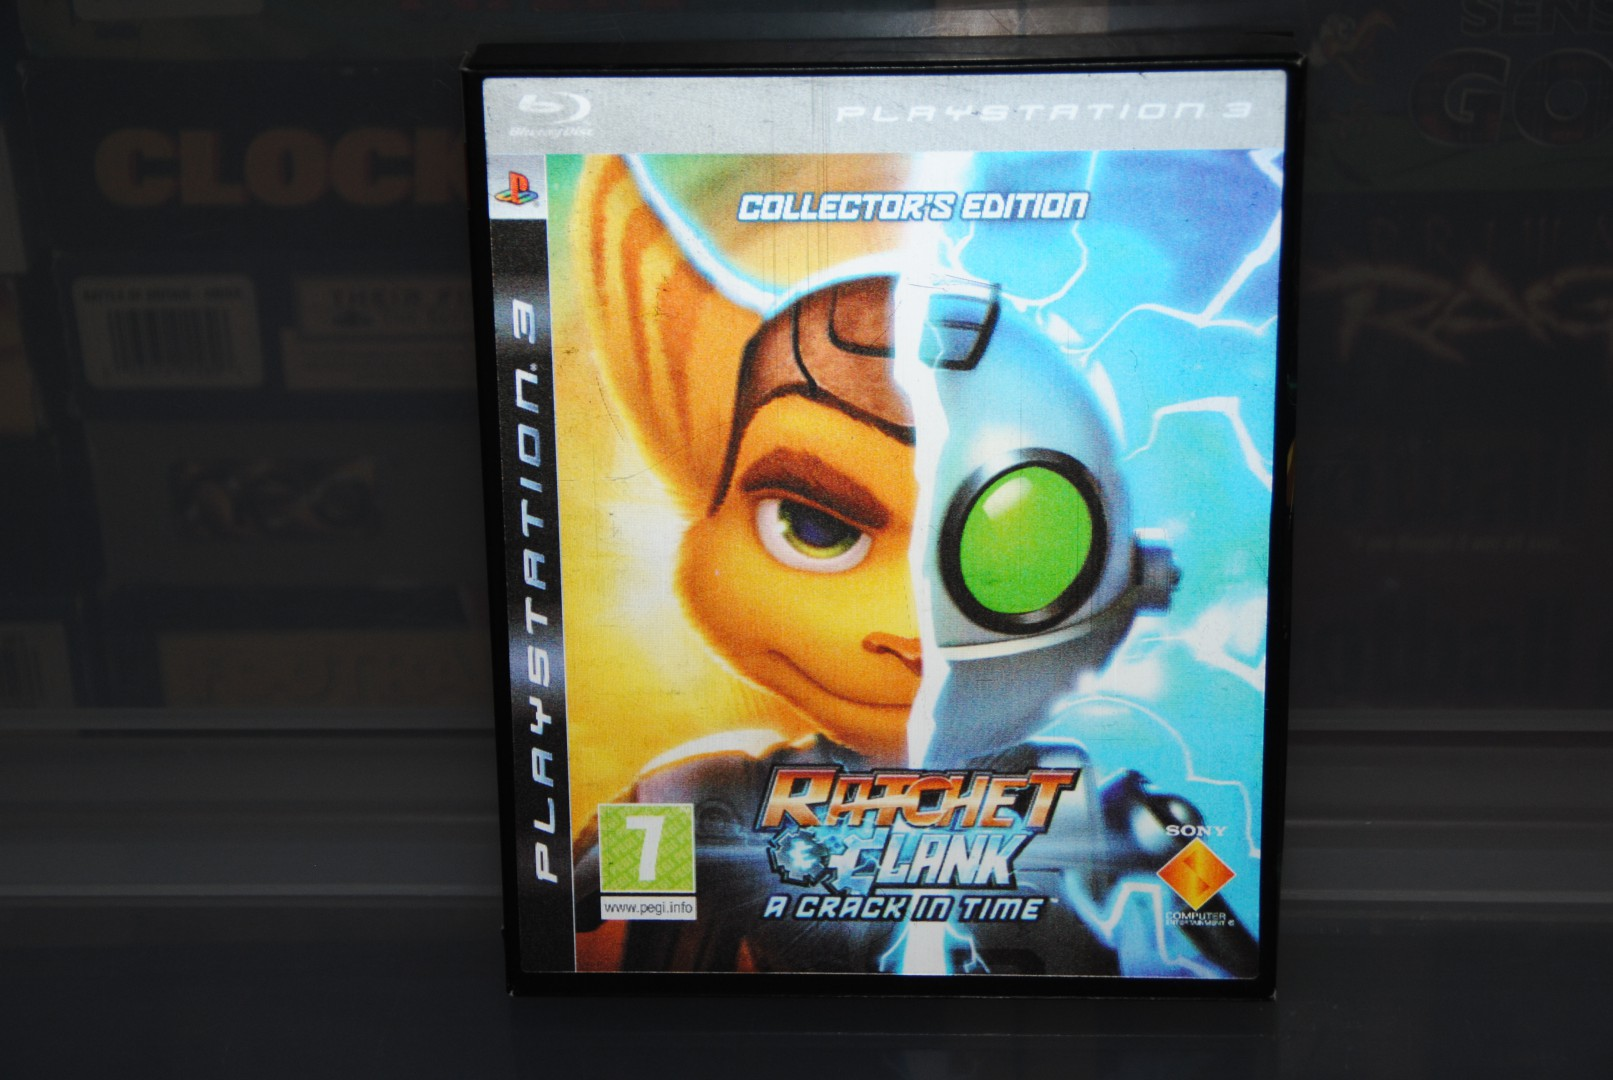 Ratchet & Clank A Crack In Time. Best game in the series?